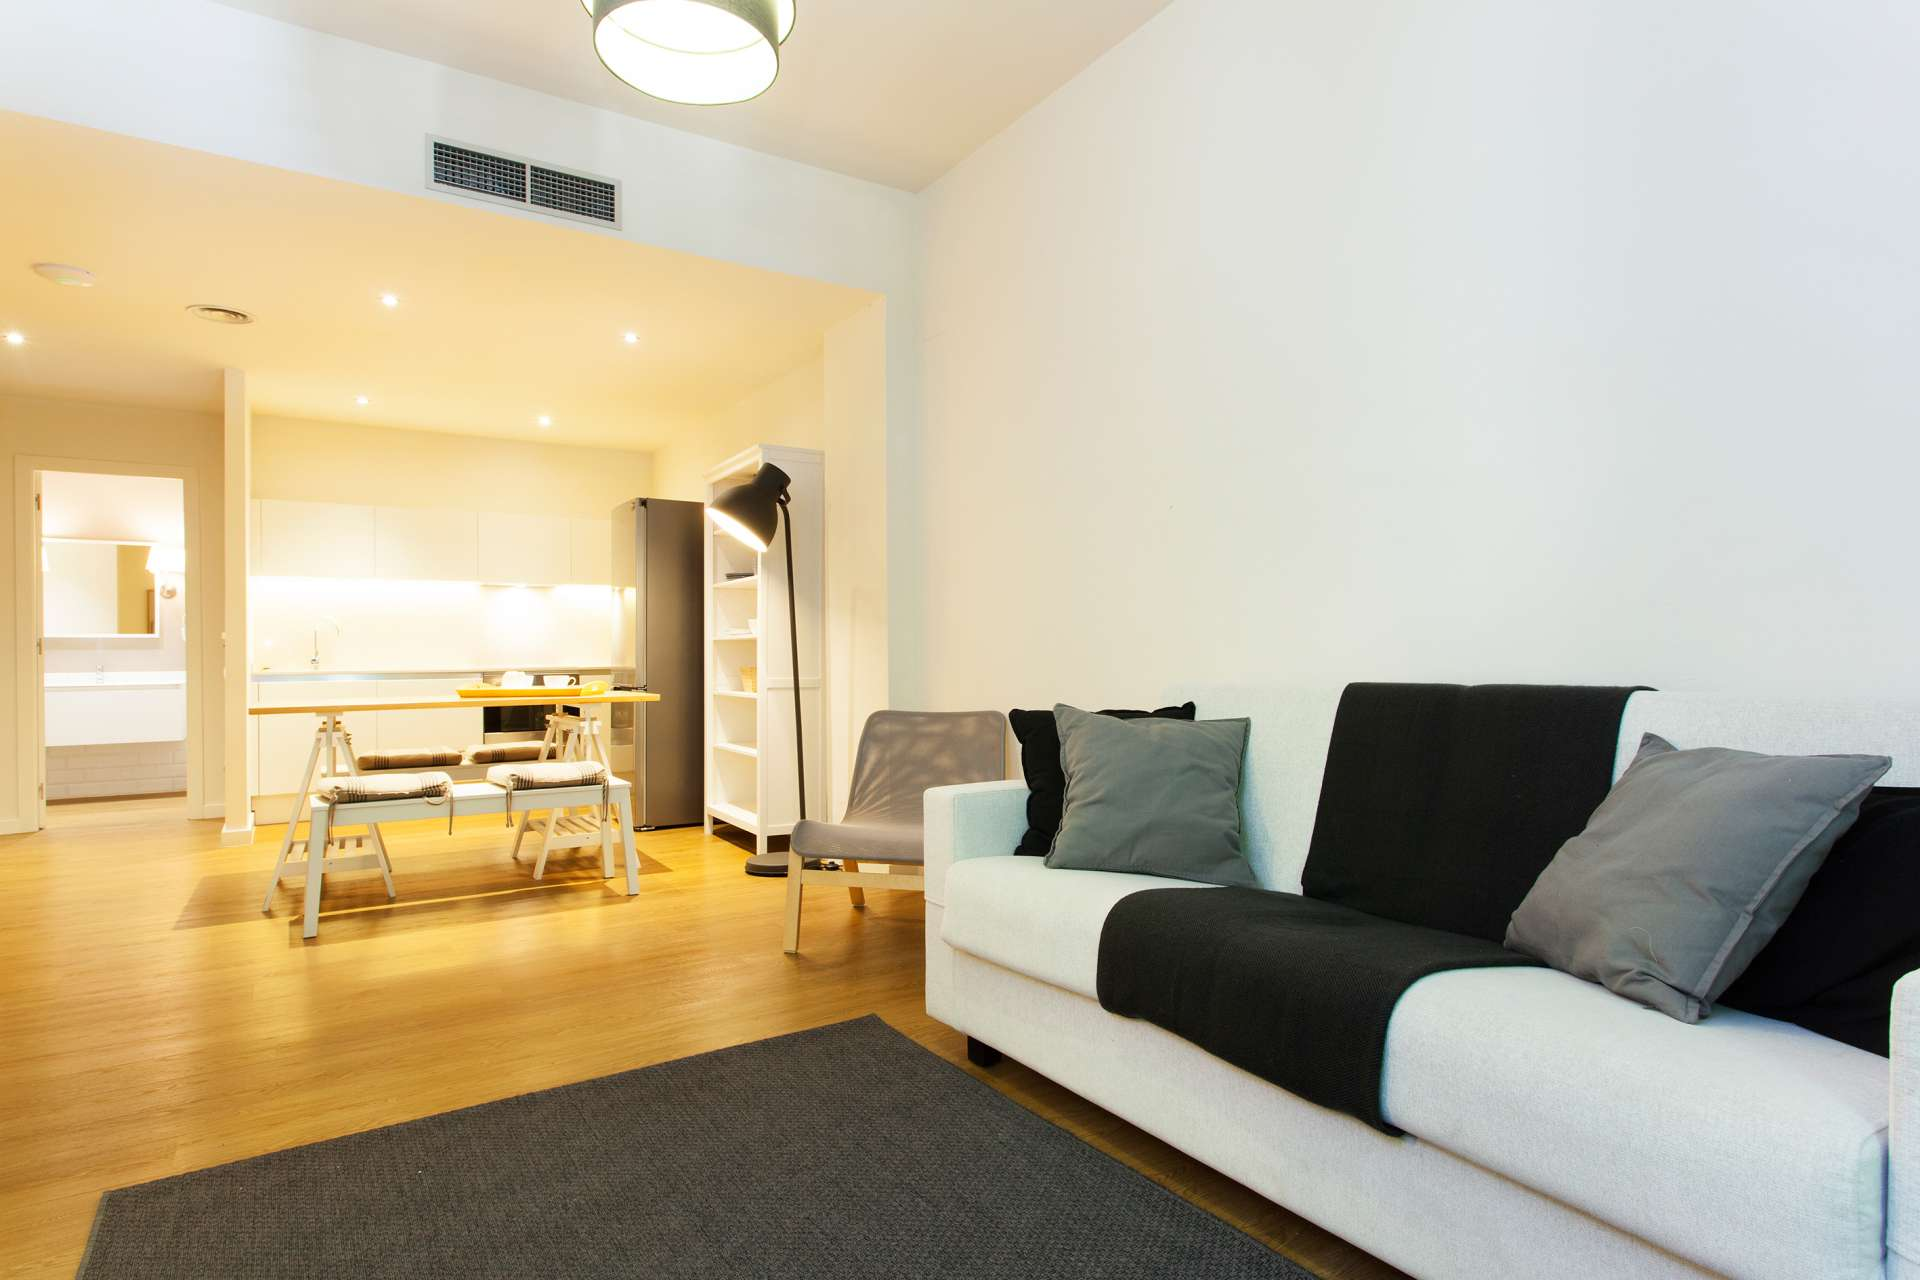 Refurbished & furnished temporary stay flat in Sant Antoni Eixample